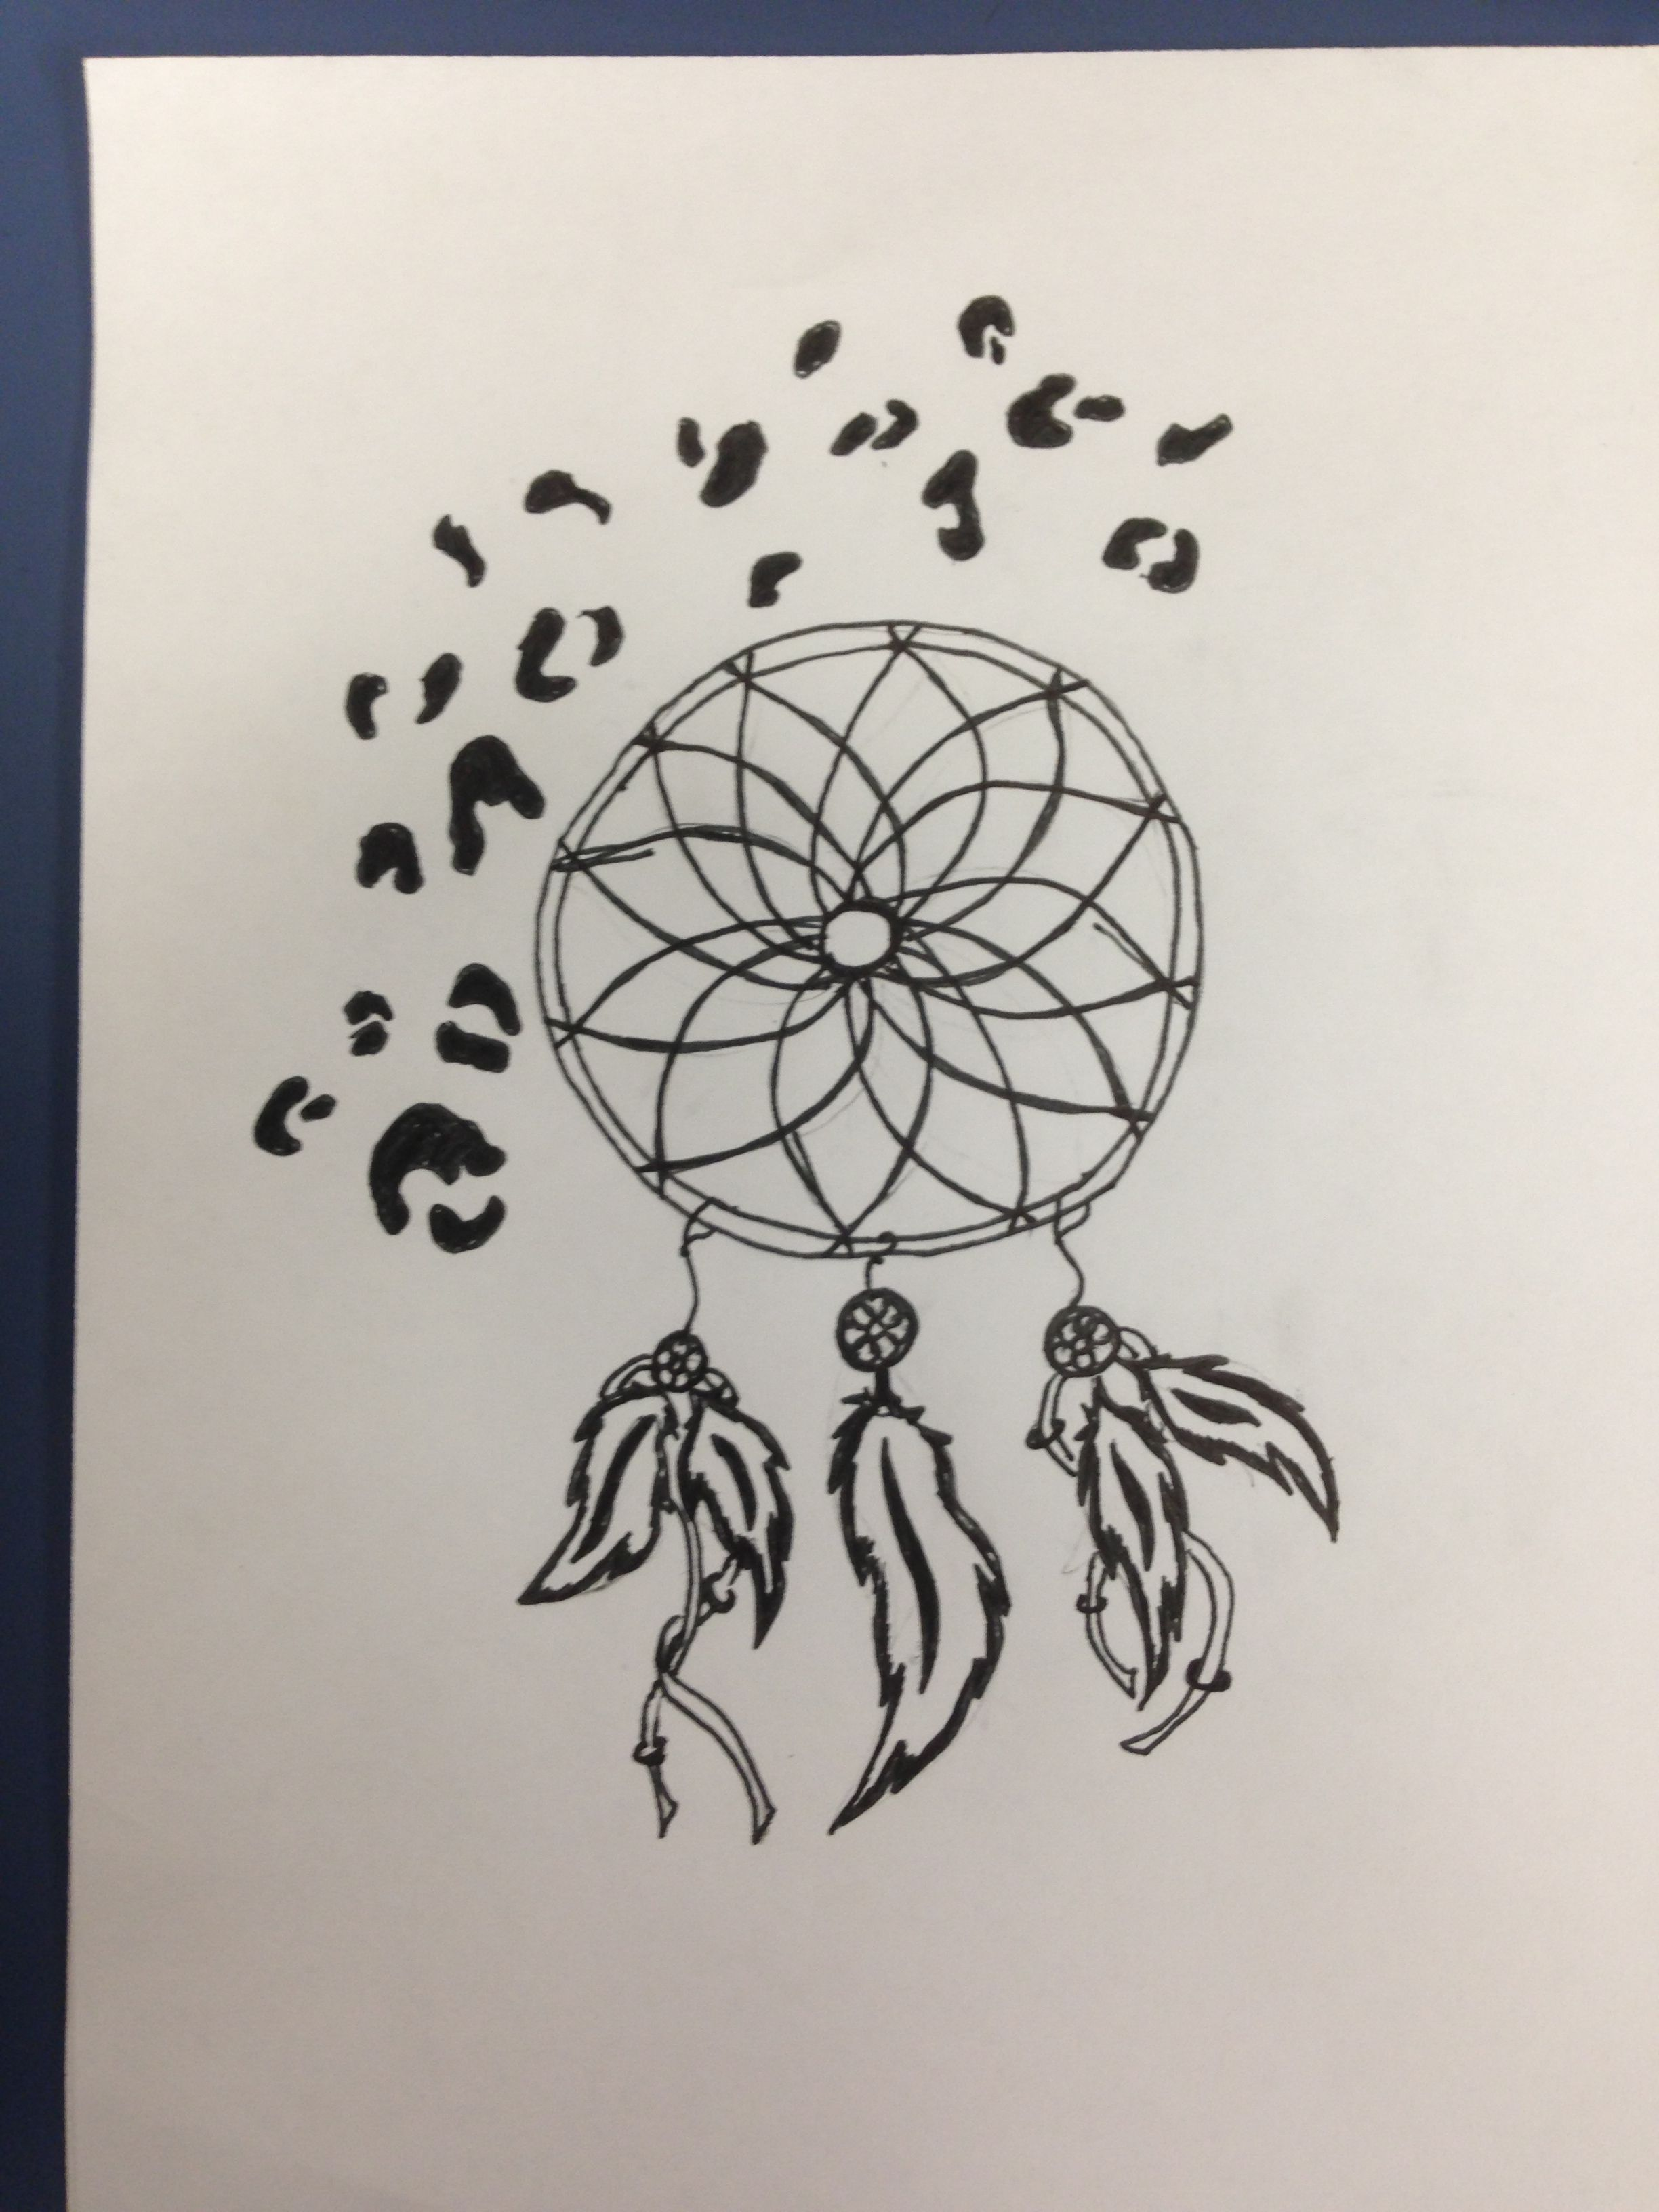 Thinking about adding on to my dream catcher like this with more detail